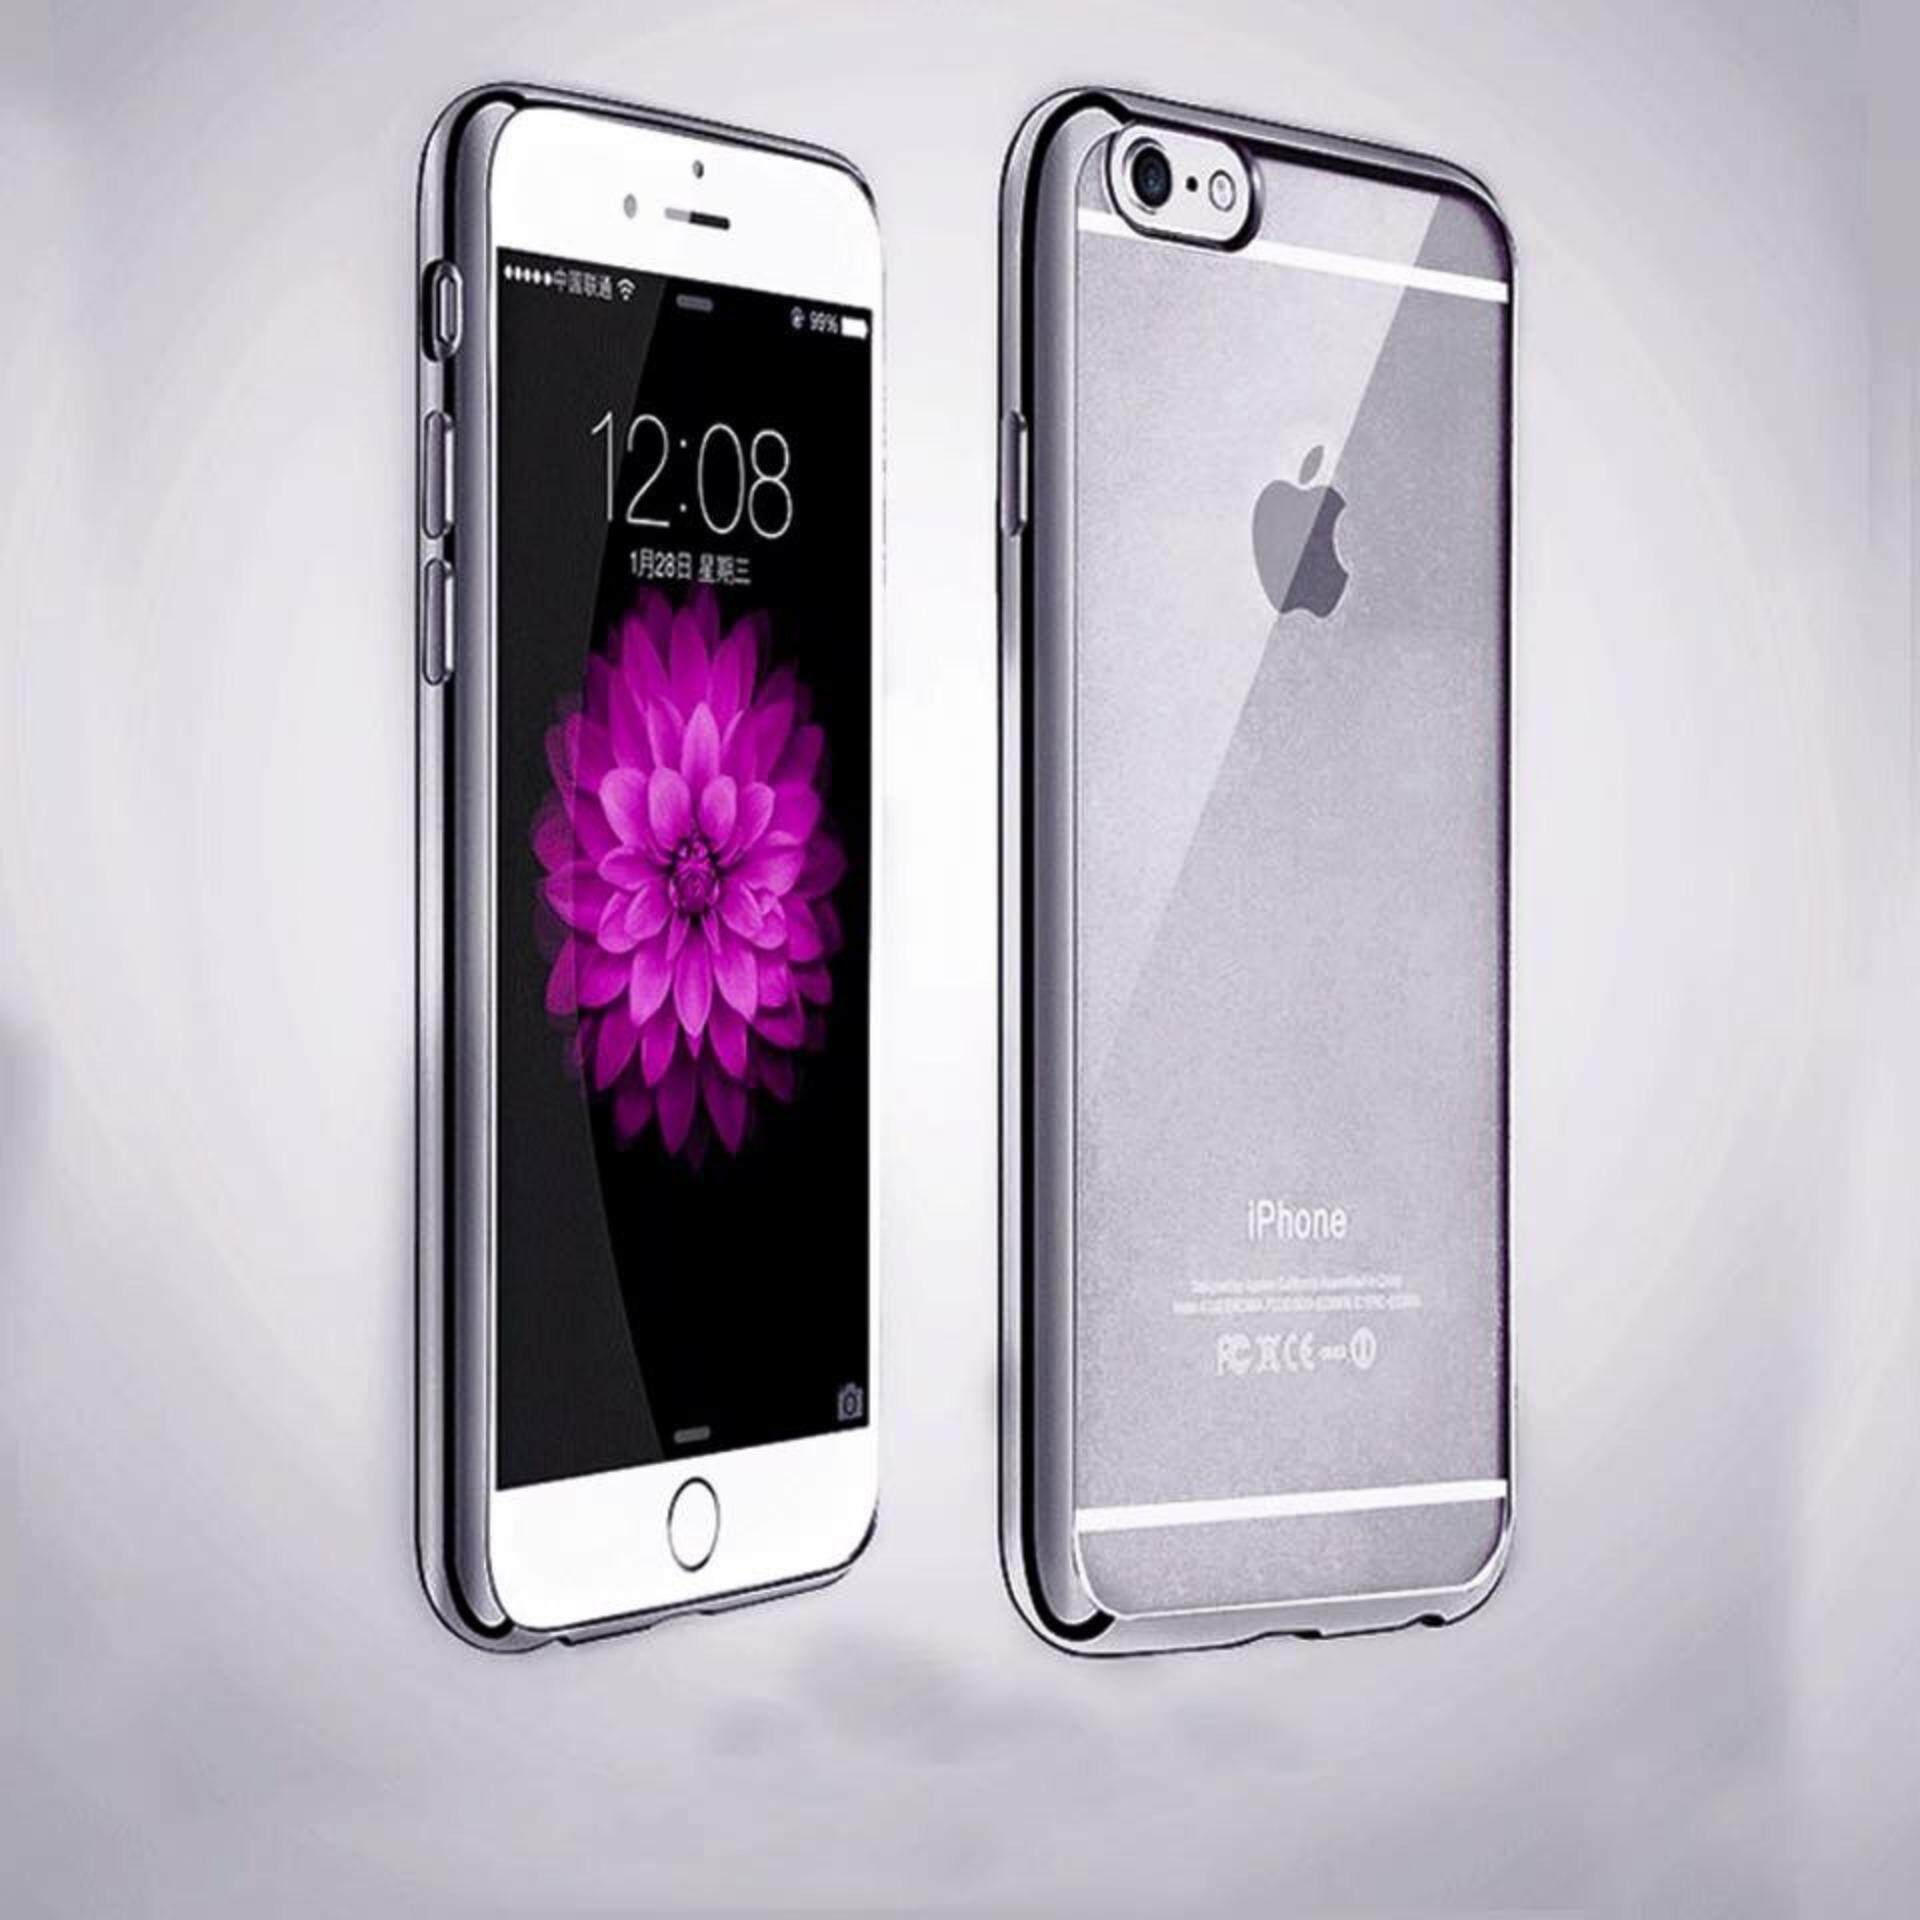 ViLi Apple iPhone 6 6s TPU Silicone Ultrathin Luxury Slim Electroplating Crystal Clear Transparent Soft Back Cover Case Covers (Dark Grey) FREE 2 Screen Protector